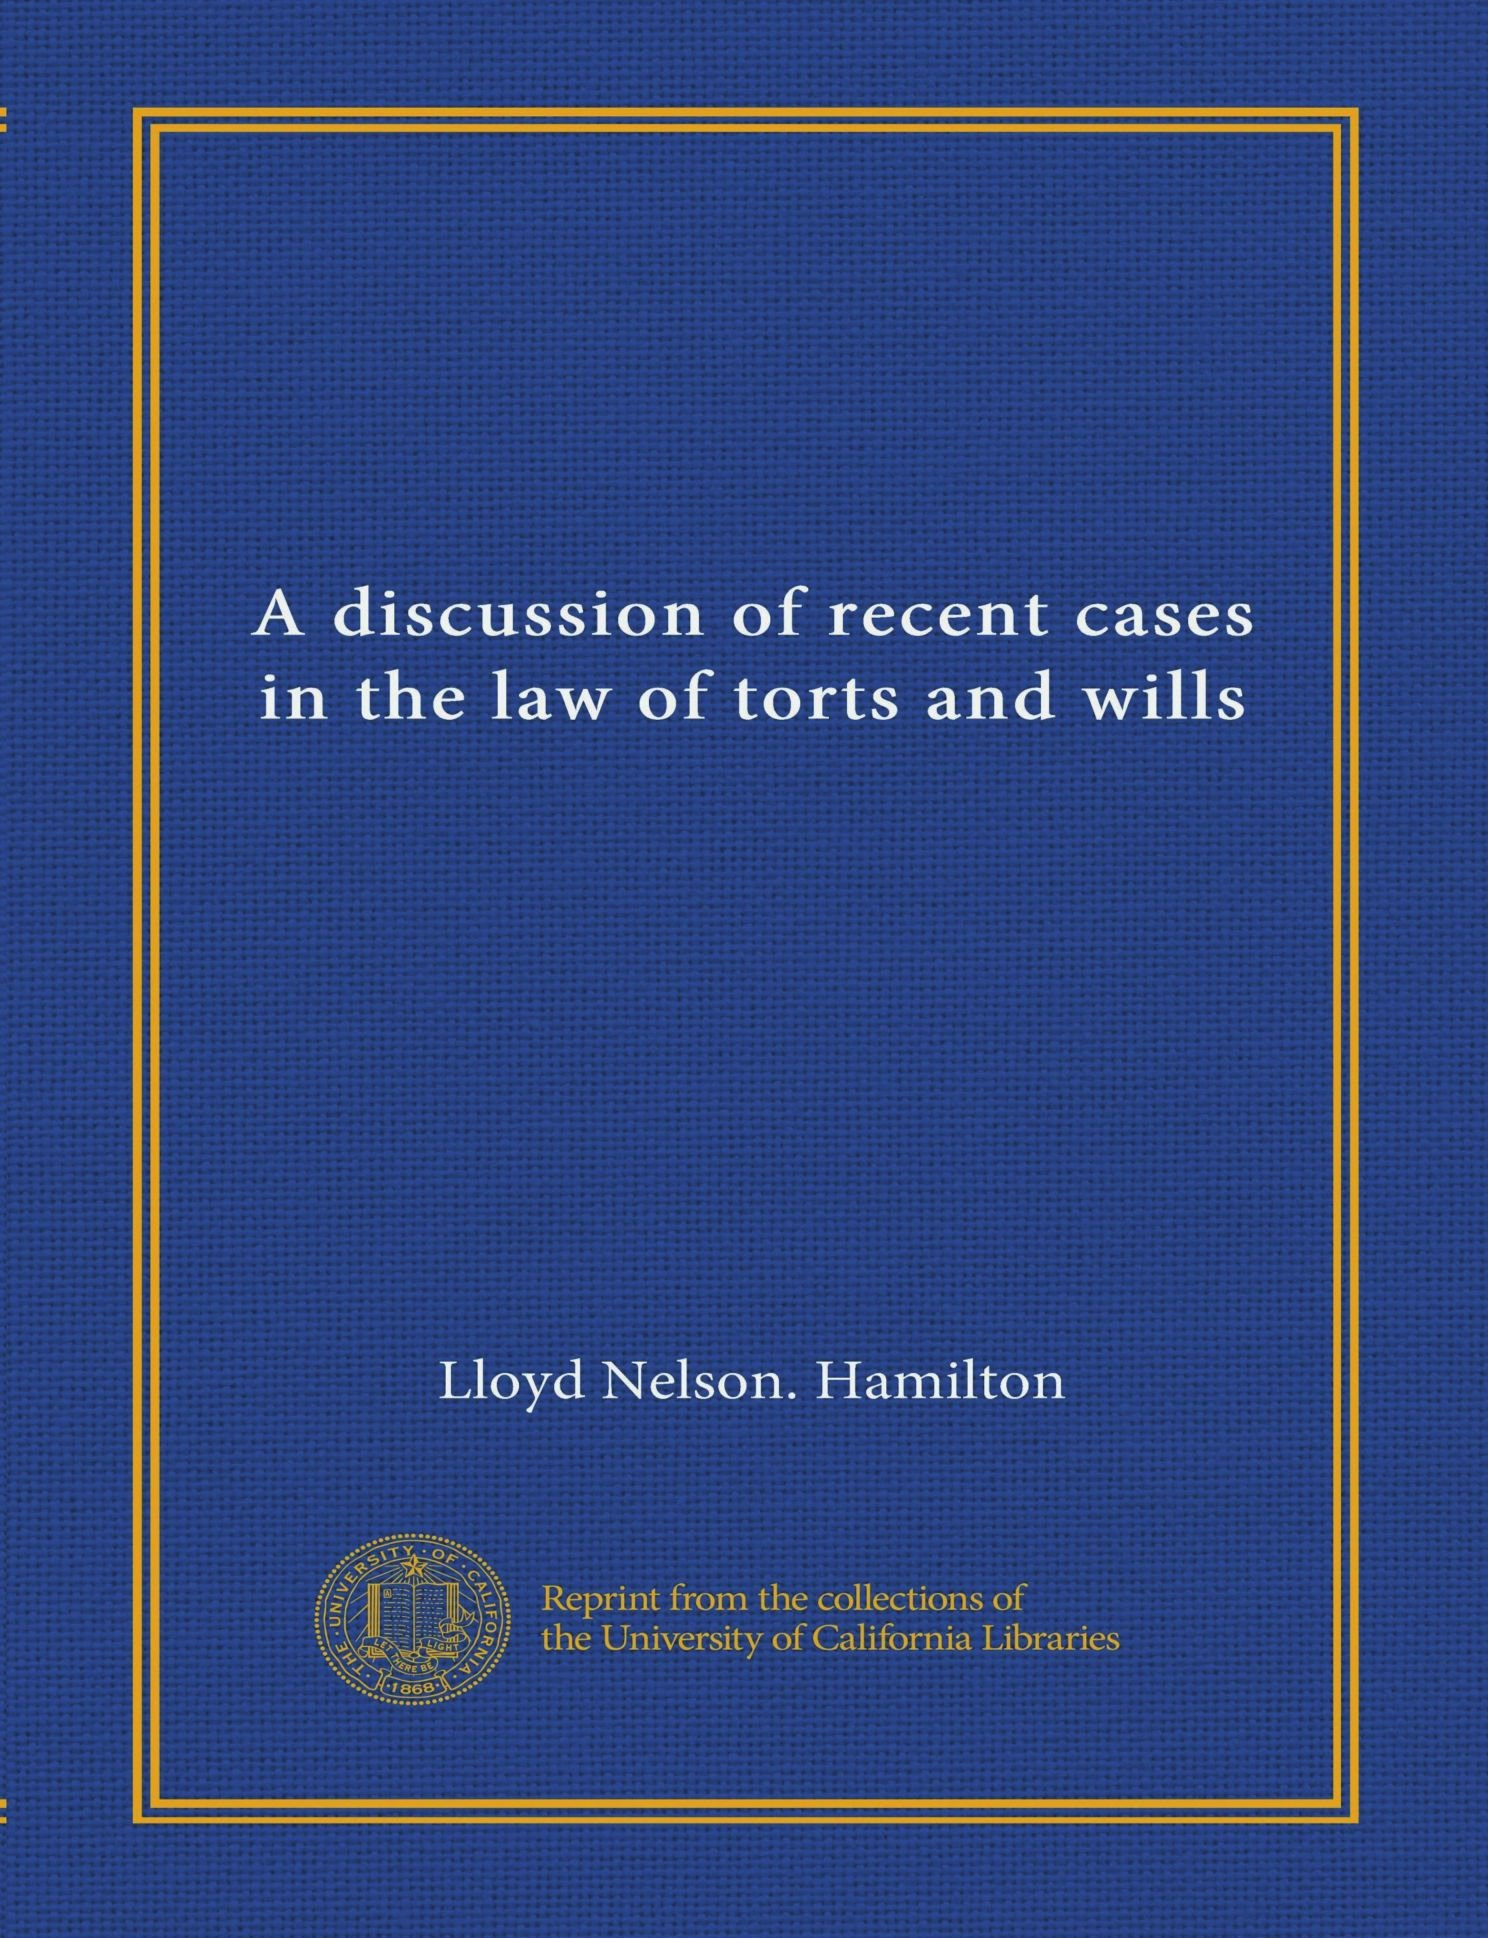 Download A discussion of recent cases in the law of torts and wills (Vol-1) ebook